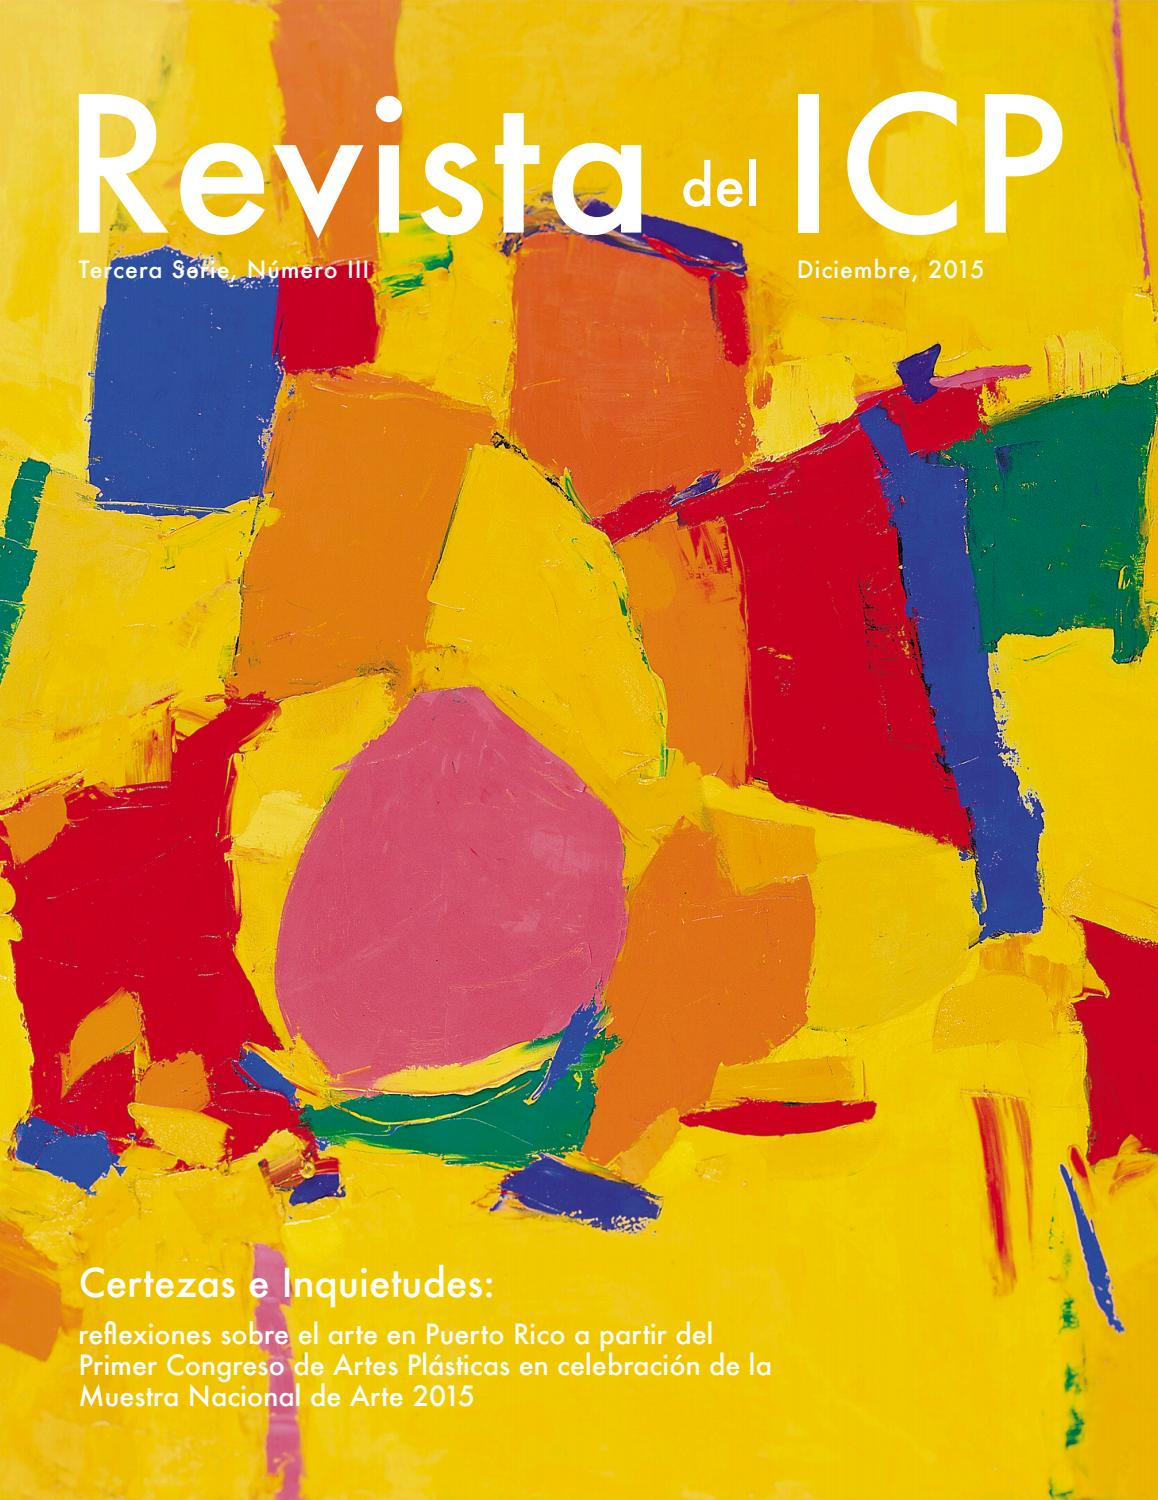 Revista del icp, tercera serie, número 3 by Revista del ICP - issuu